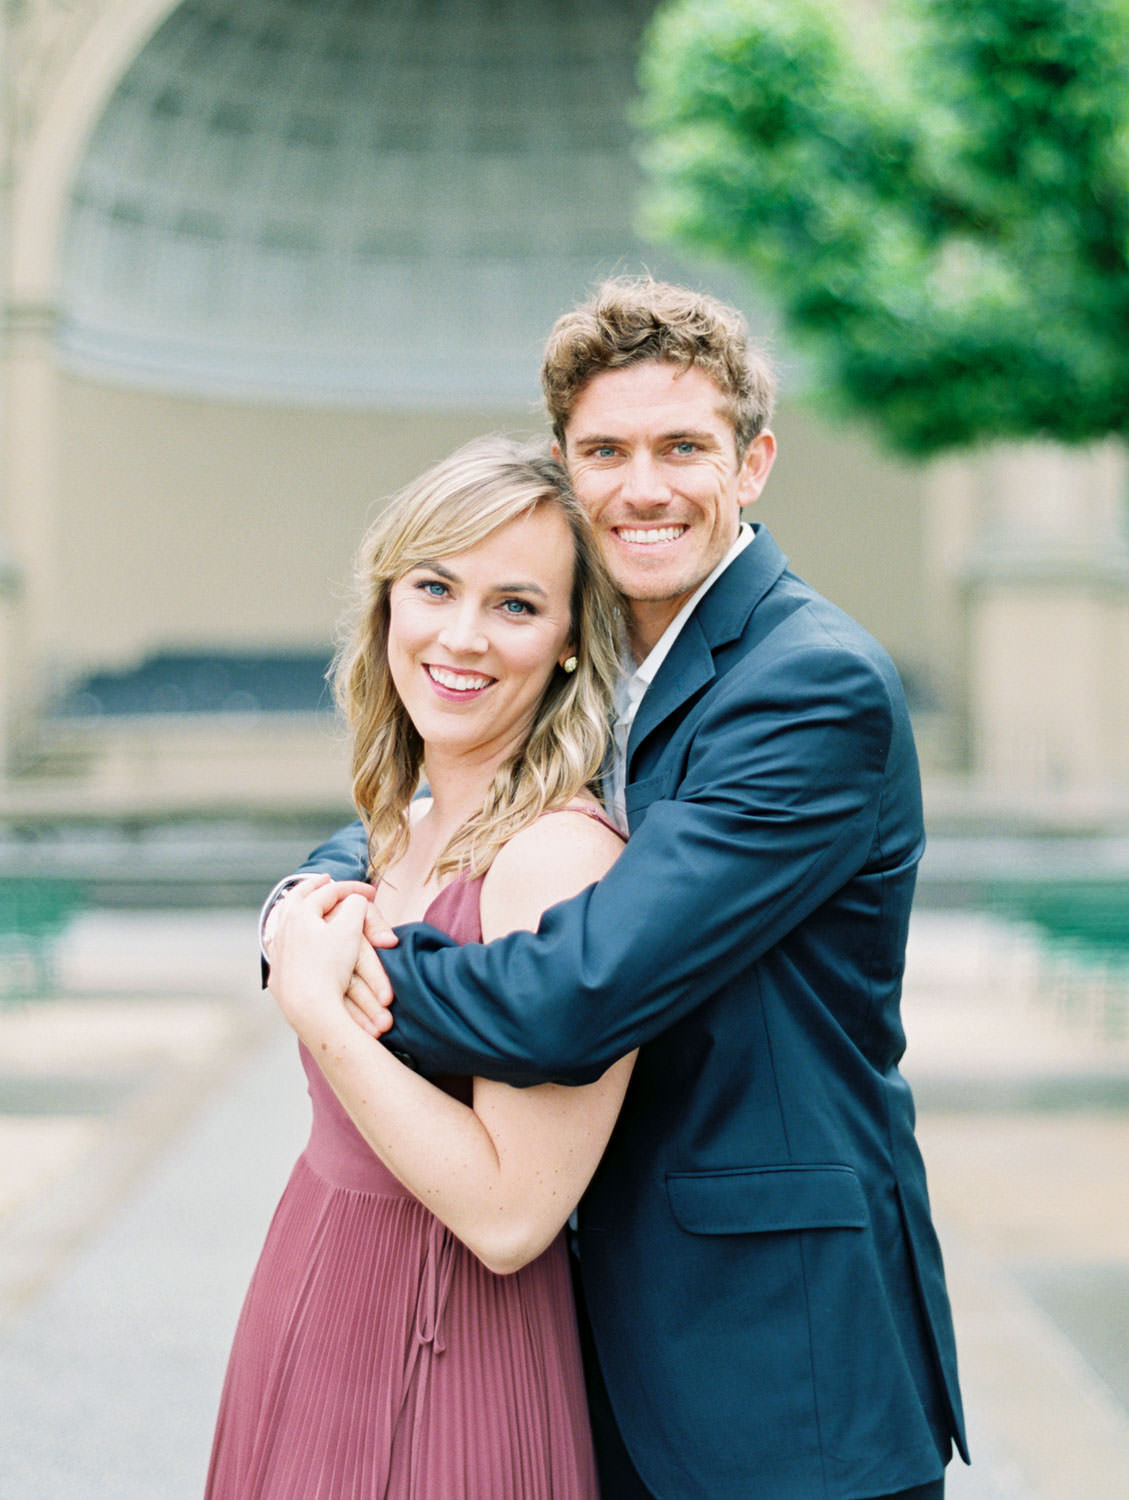 Bride in a deep mauve dress and groom in navy suit hugging and smiling at the camera. Film Engagement Photos at Golden Gate Park by Cavin Elizabeth